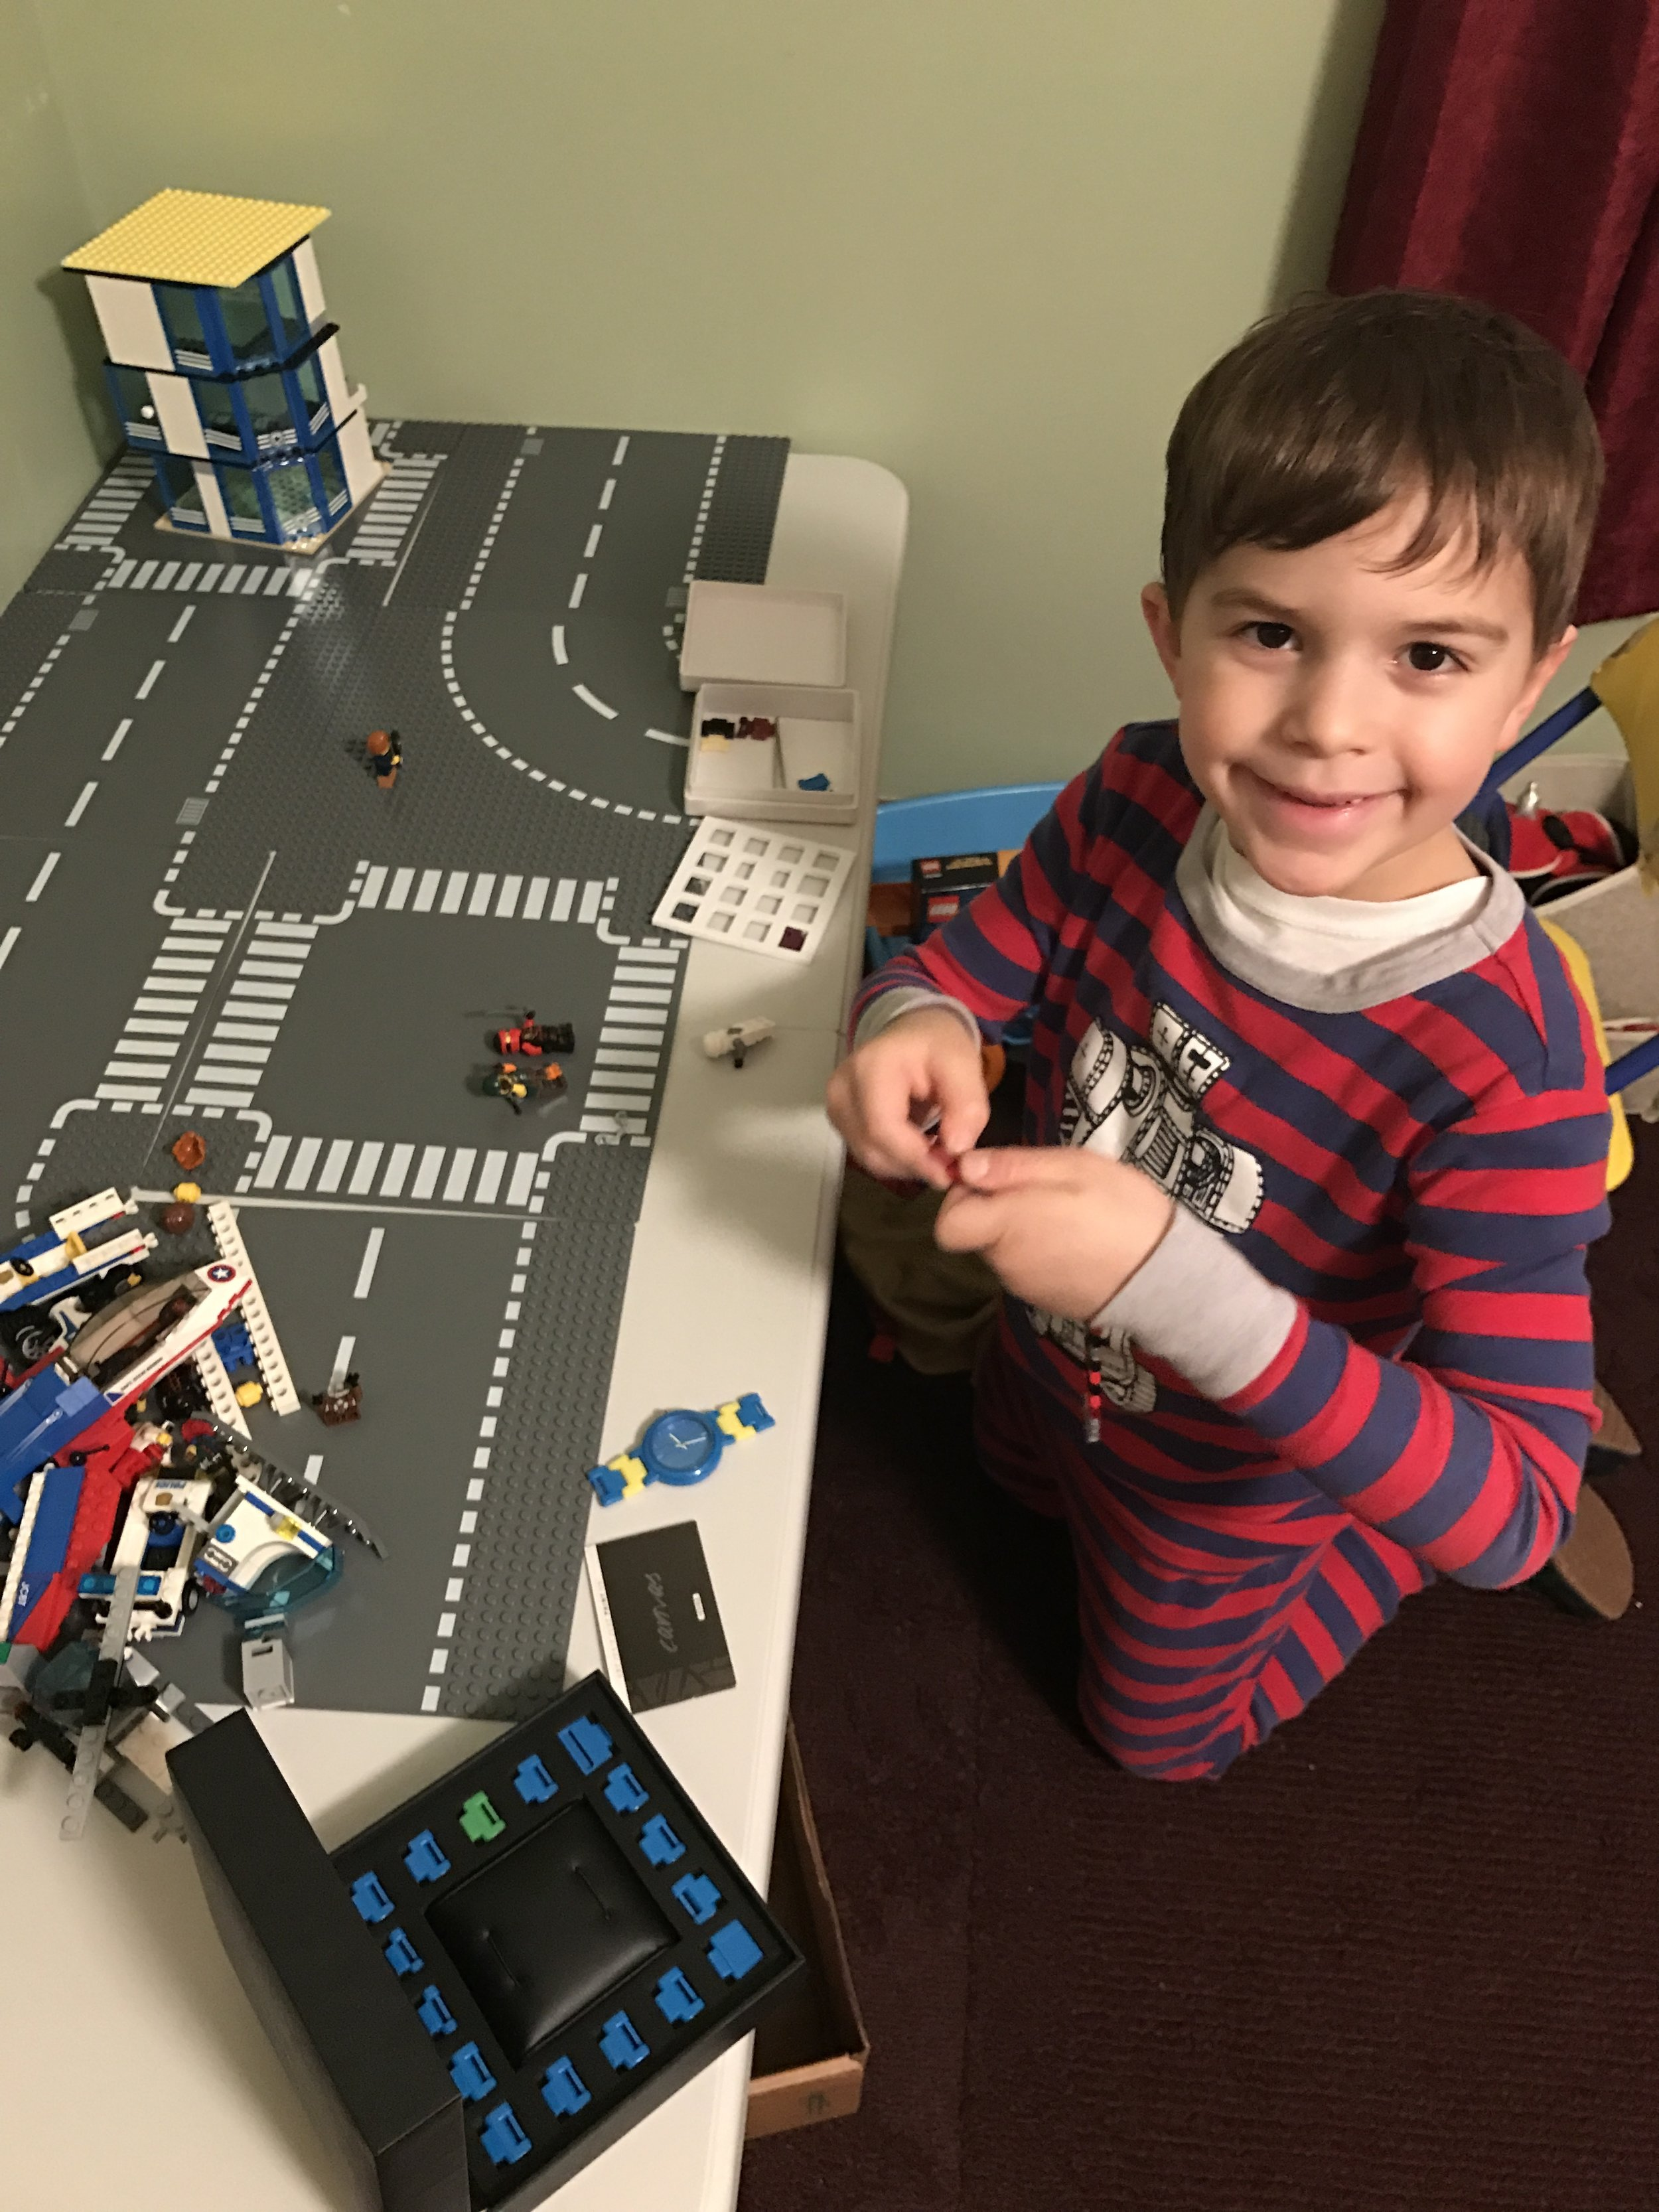 William, age 7, is my adorable and creative son who is obsessed with Legos, Superheroes, and his new kit from Mosaiqe. The kit is FREE with purchase of a Mosaiqe watch from the web.